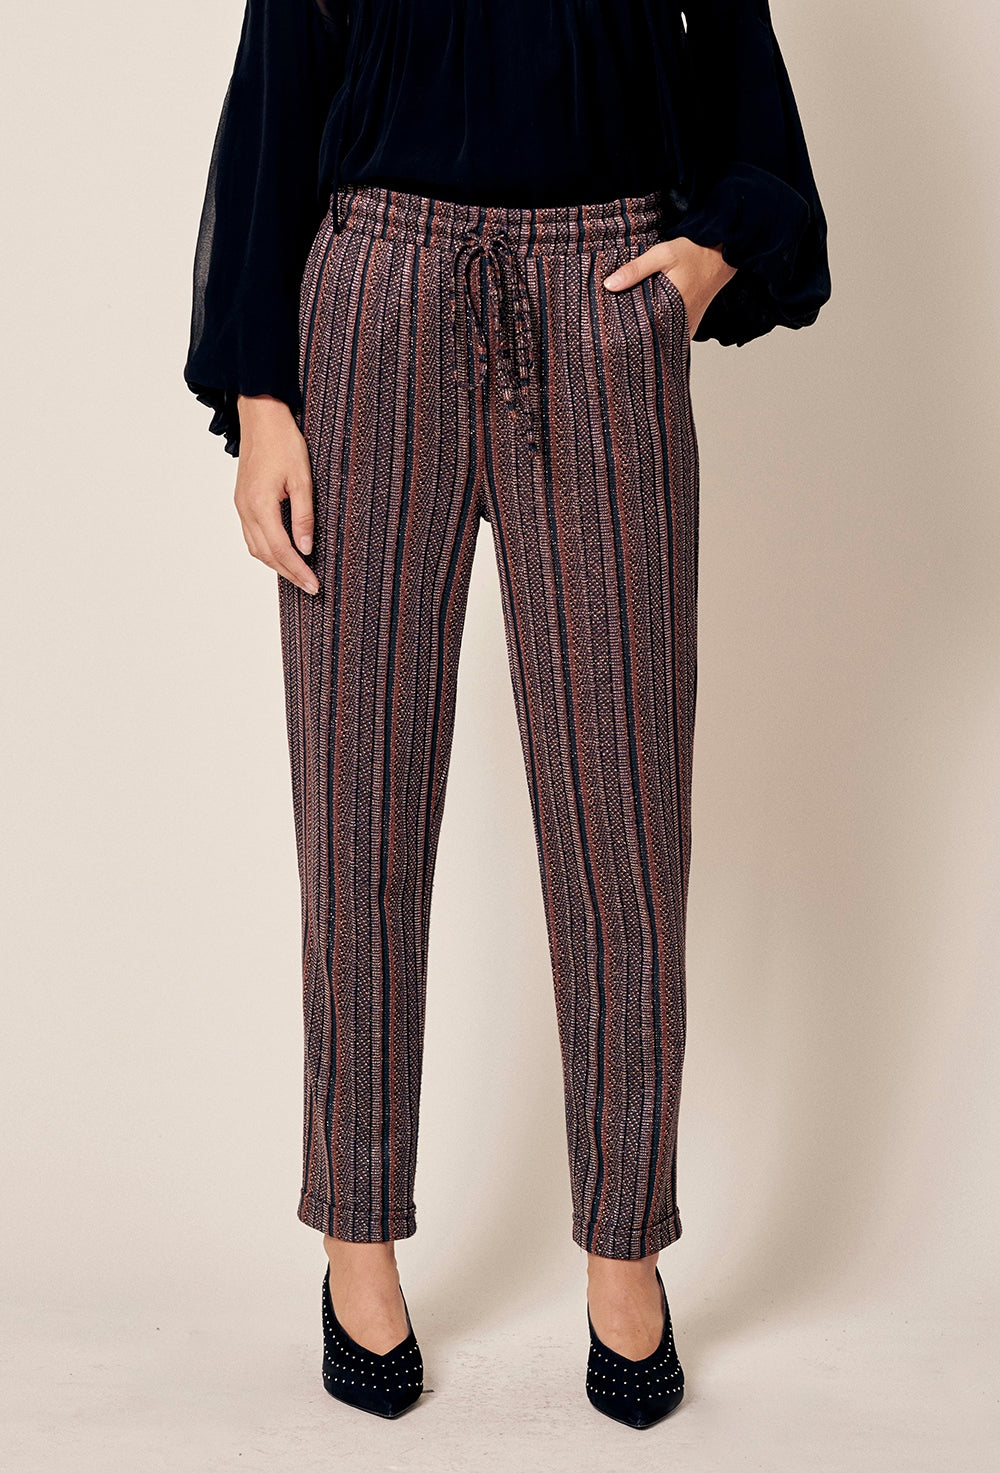 Clear Striped Pants